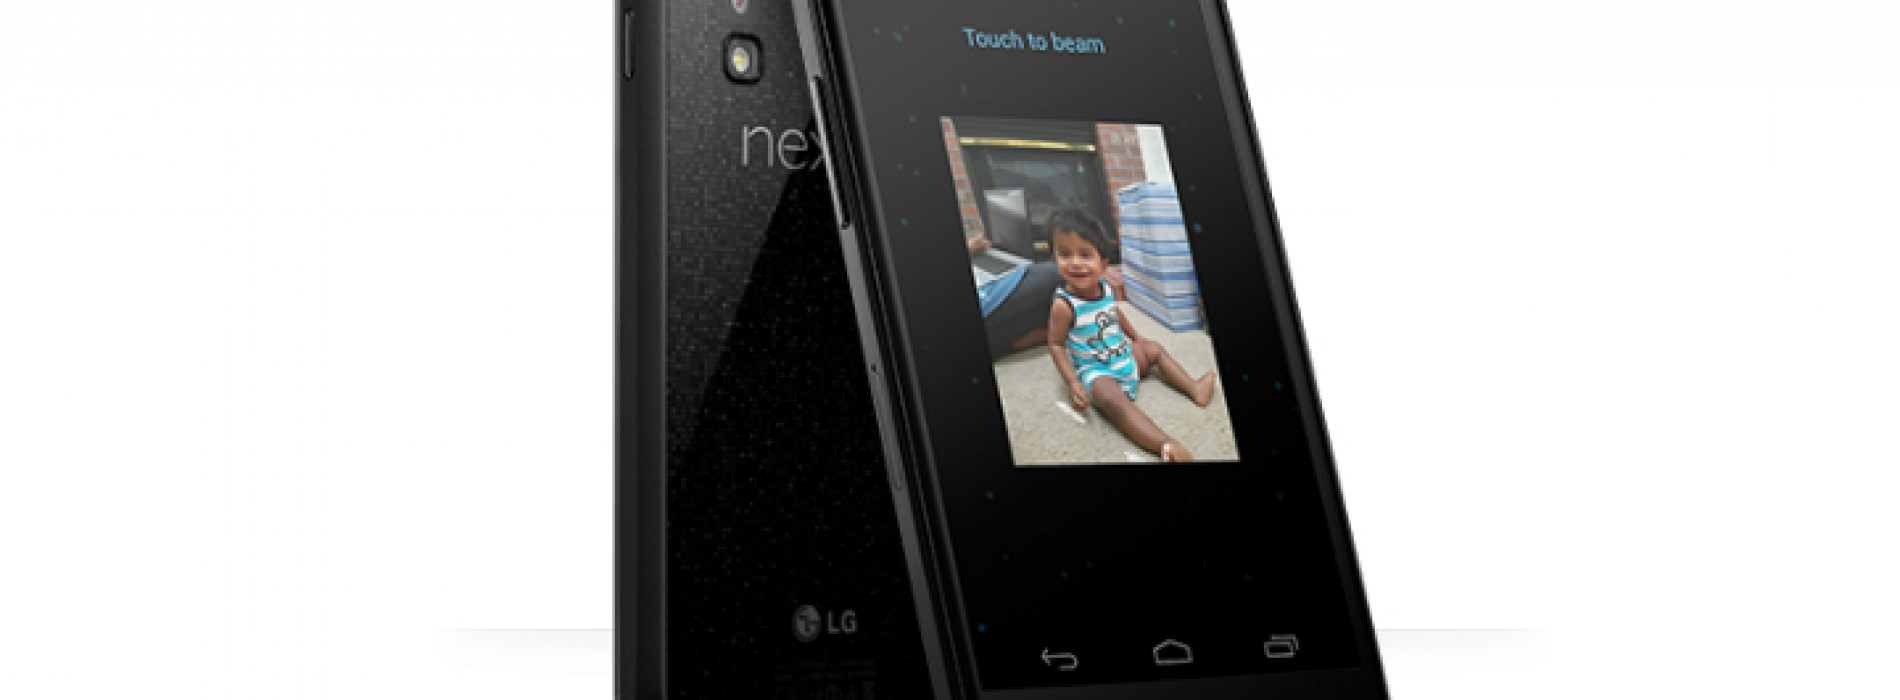 Google introduces Nexus 4 store locator